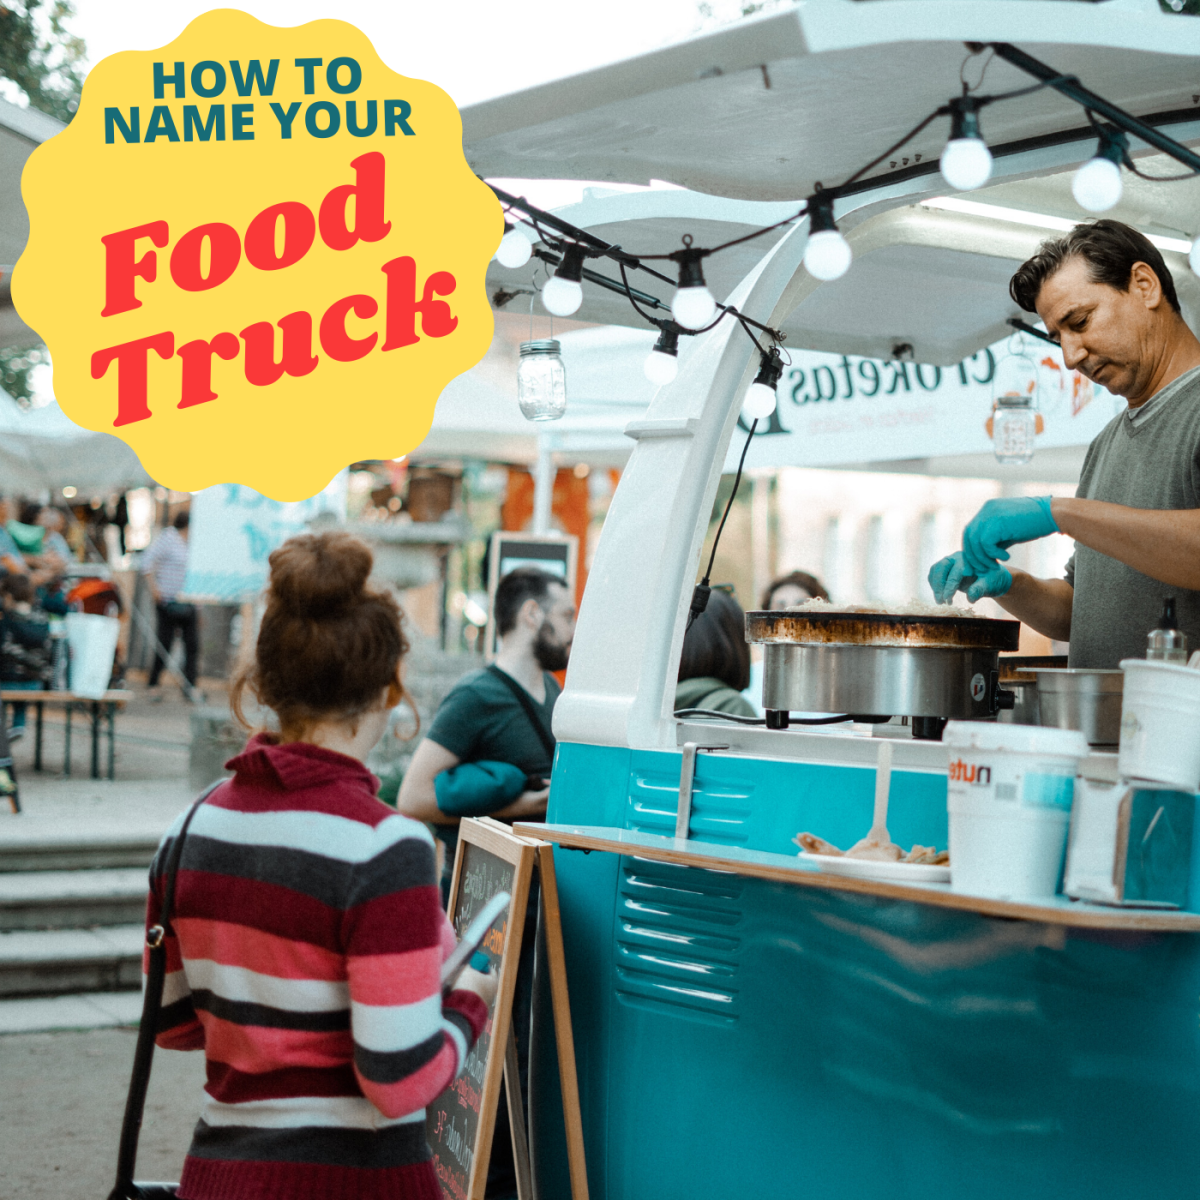 Thinking of opening your own food truck? Learn how to choose a catchy name that customers will remember.